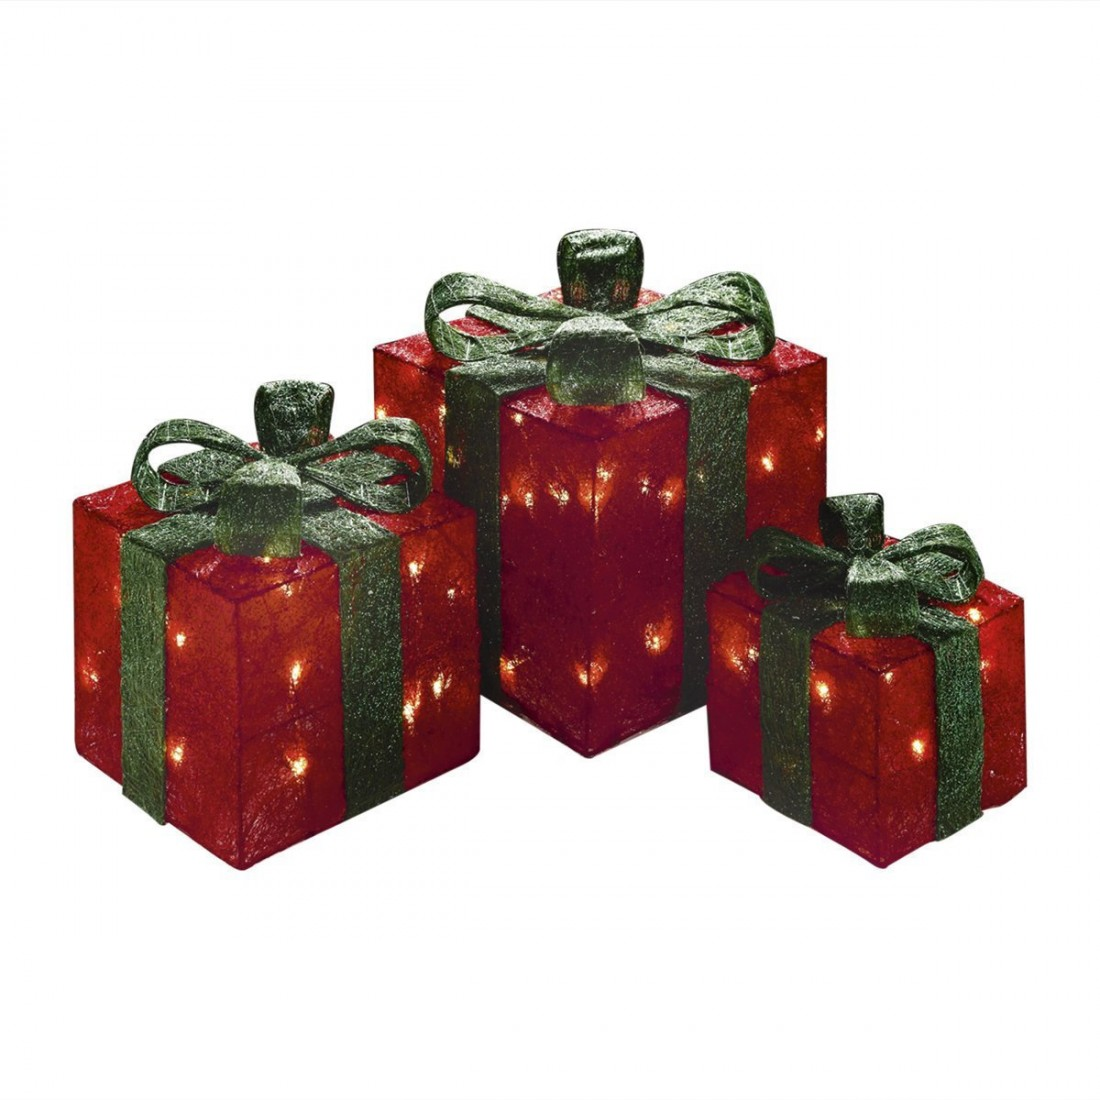 Set of 3 Premier Lit Glitter Christmas Parcels - Red with Green Bows